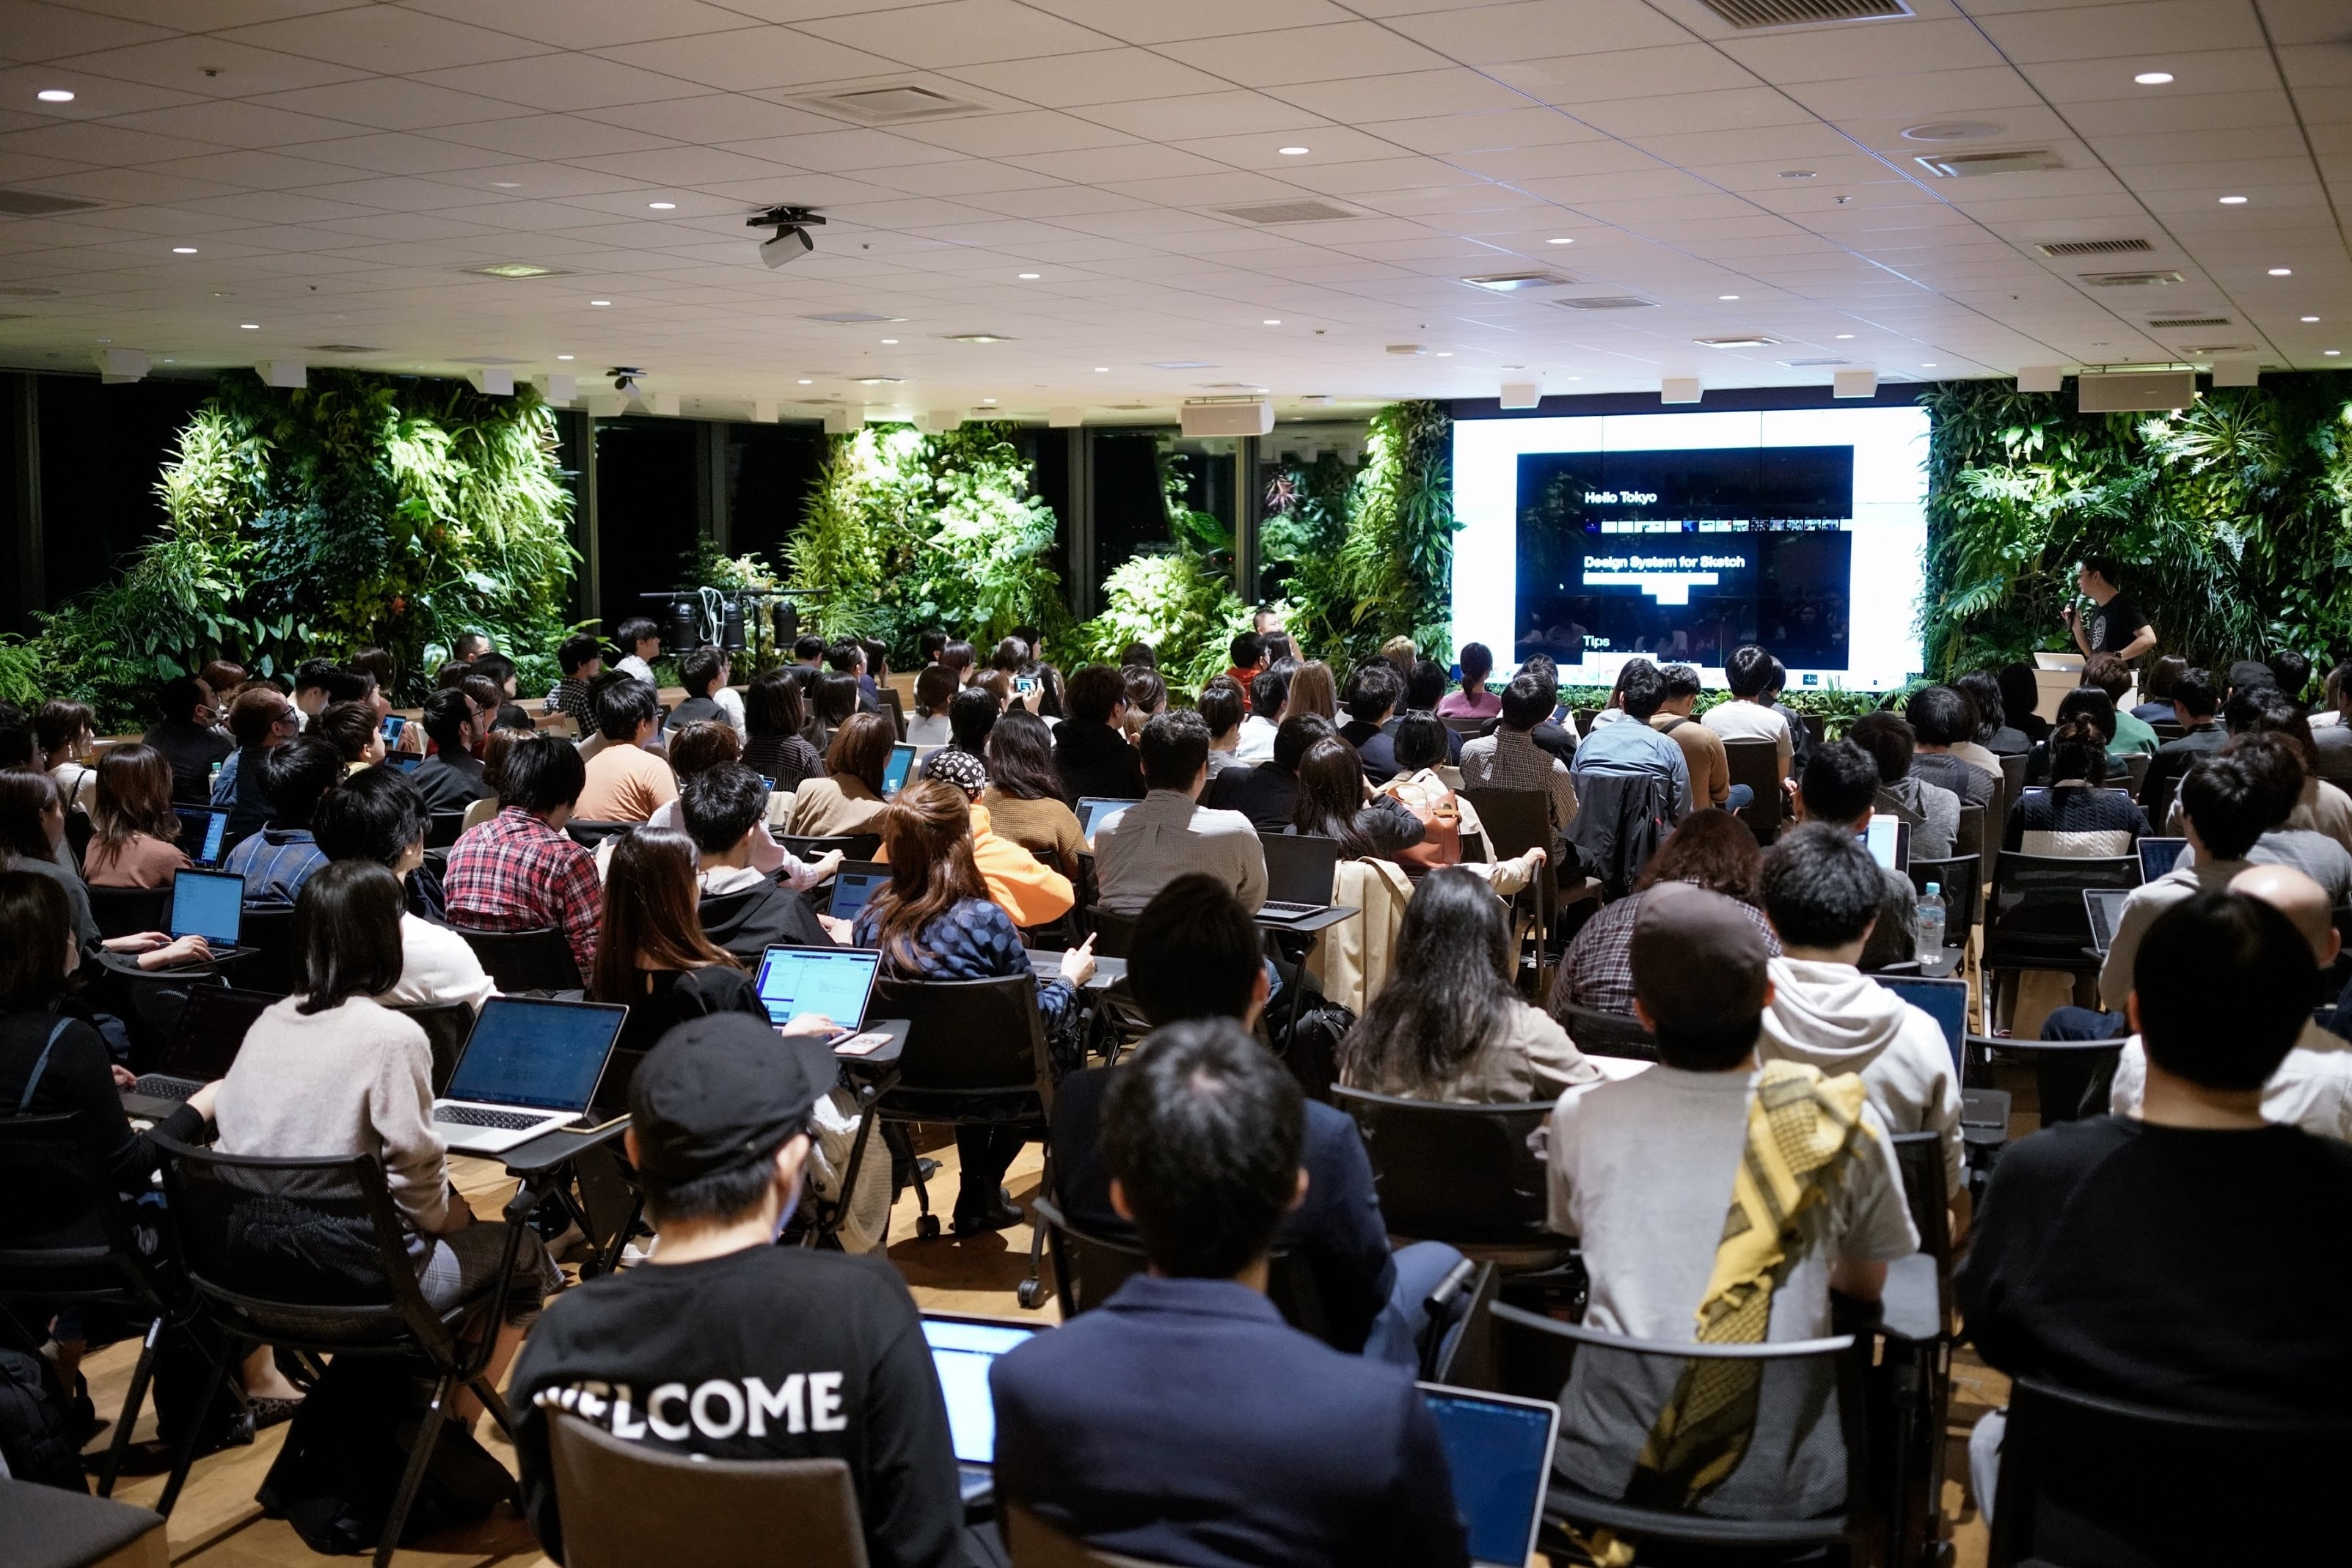 A photo from a meetup in Tokyo with almost 100 people watching a presentation.